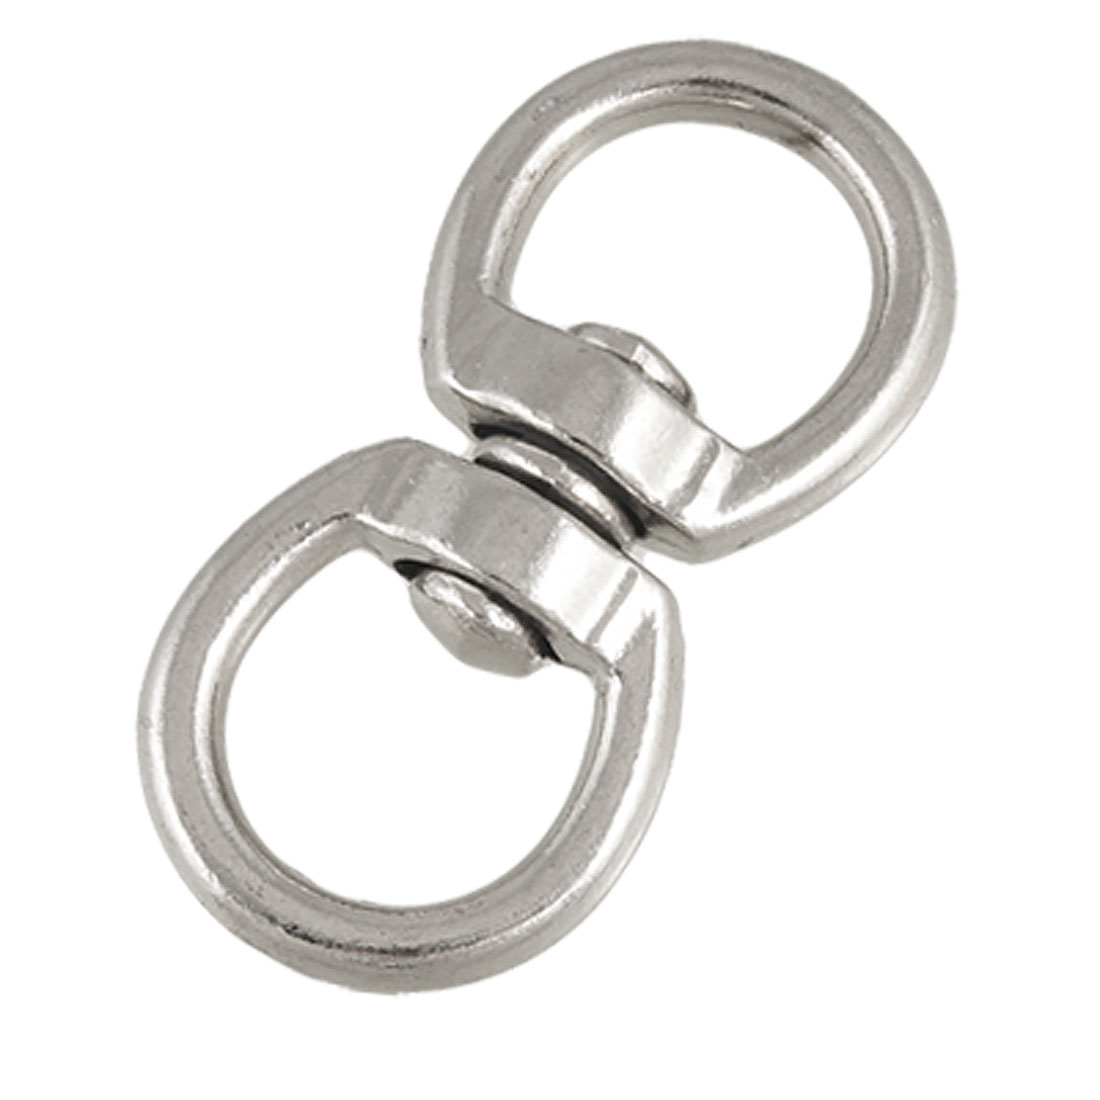 Silver Tone Double Ended Zinc Alloy Swivel Eye Hook Shackle Size 4